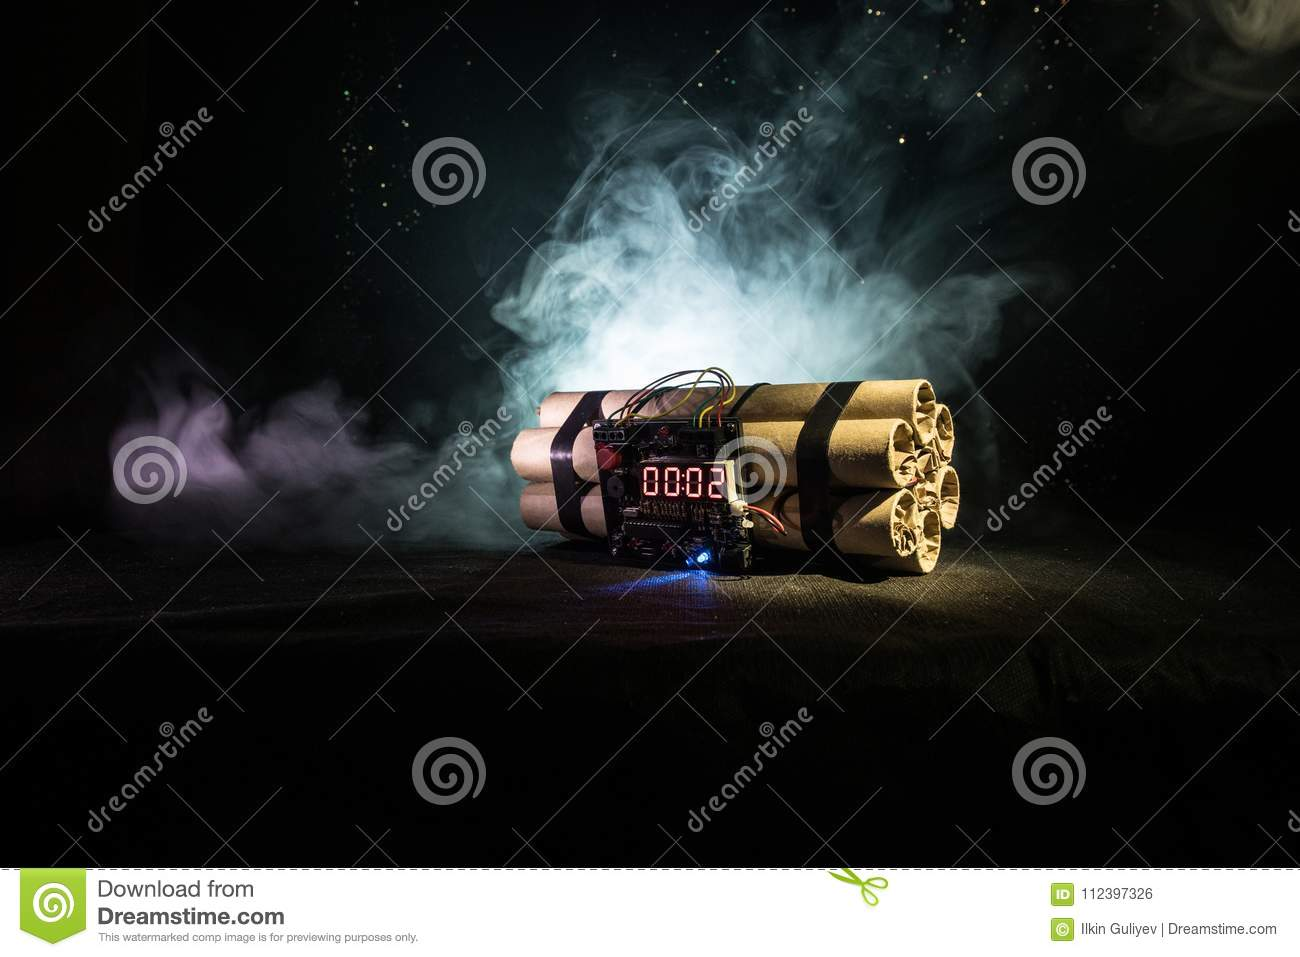 Image of a time bomb against dark background. Timer counting down to detonation illuminated in a shaft light shining through the d